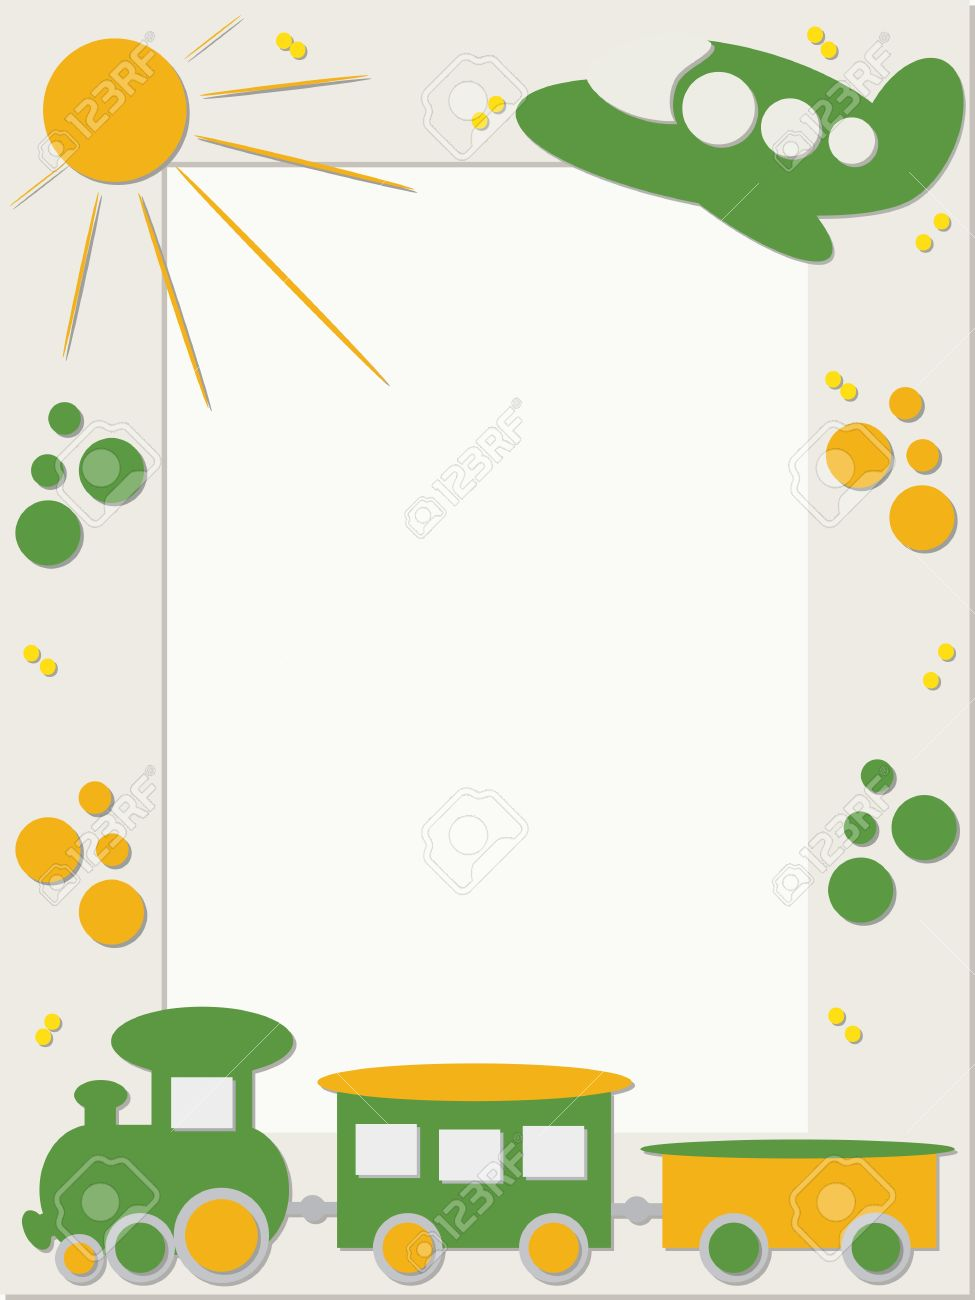 Children frame with train and plane royalty free cliparts vectors children frame with train and plane stock vector 12765002 jeuxipadfo Gallery